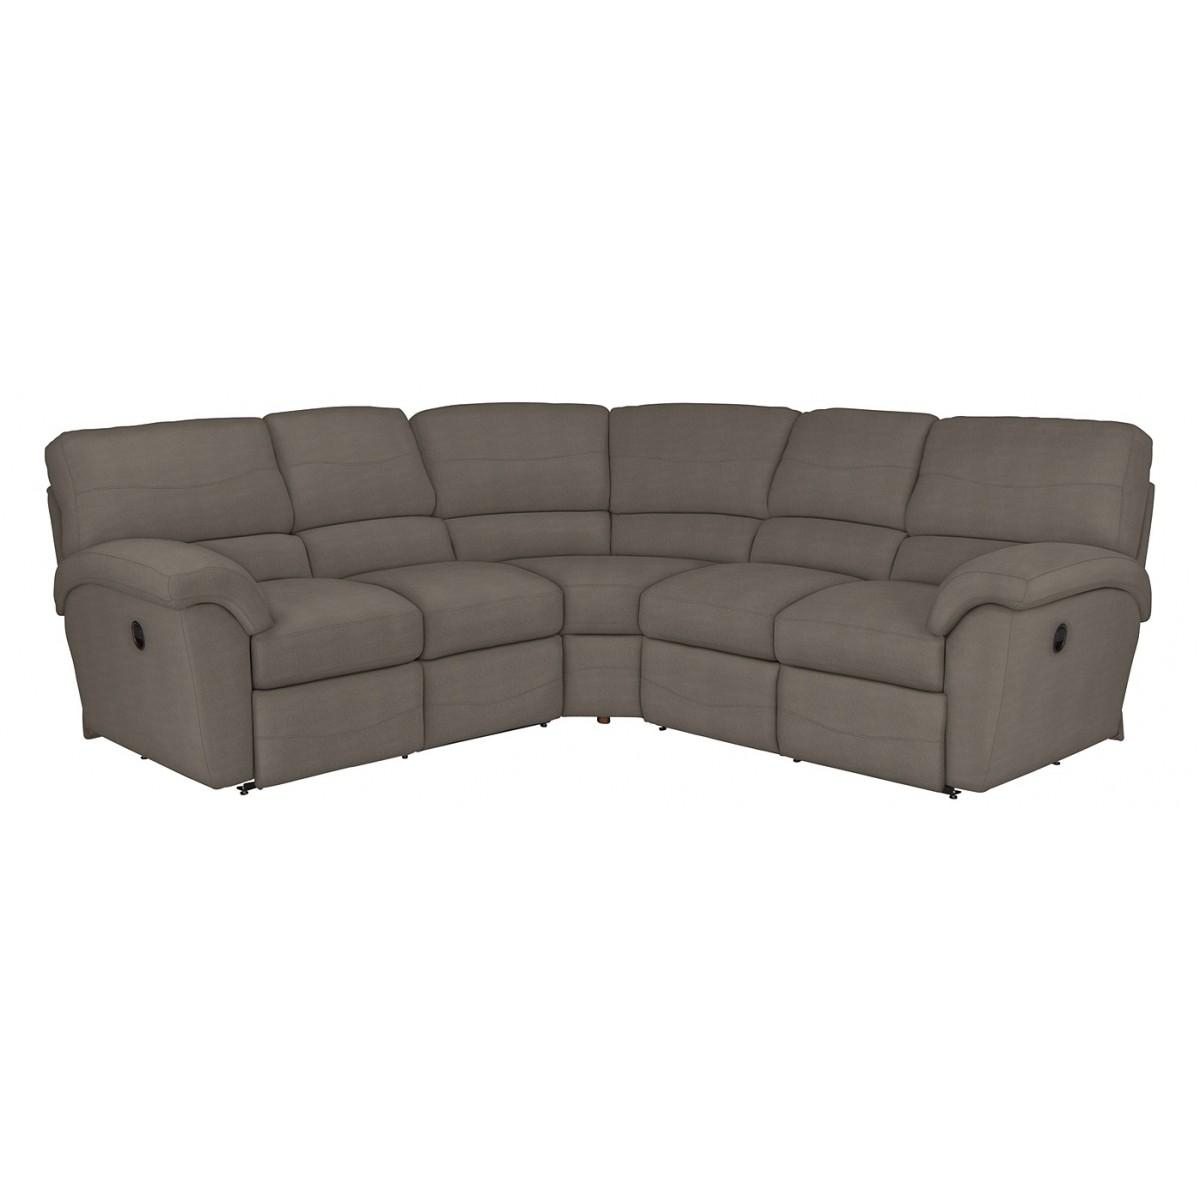 Lazyboy Sectional With Lazyboy Sectional Sofas (Image 14 of 20)